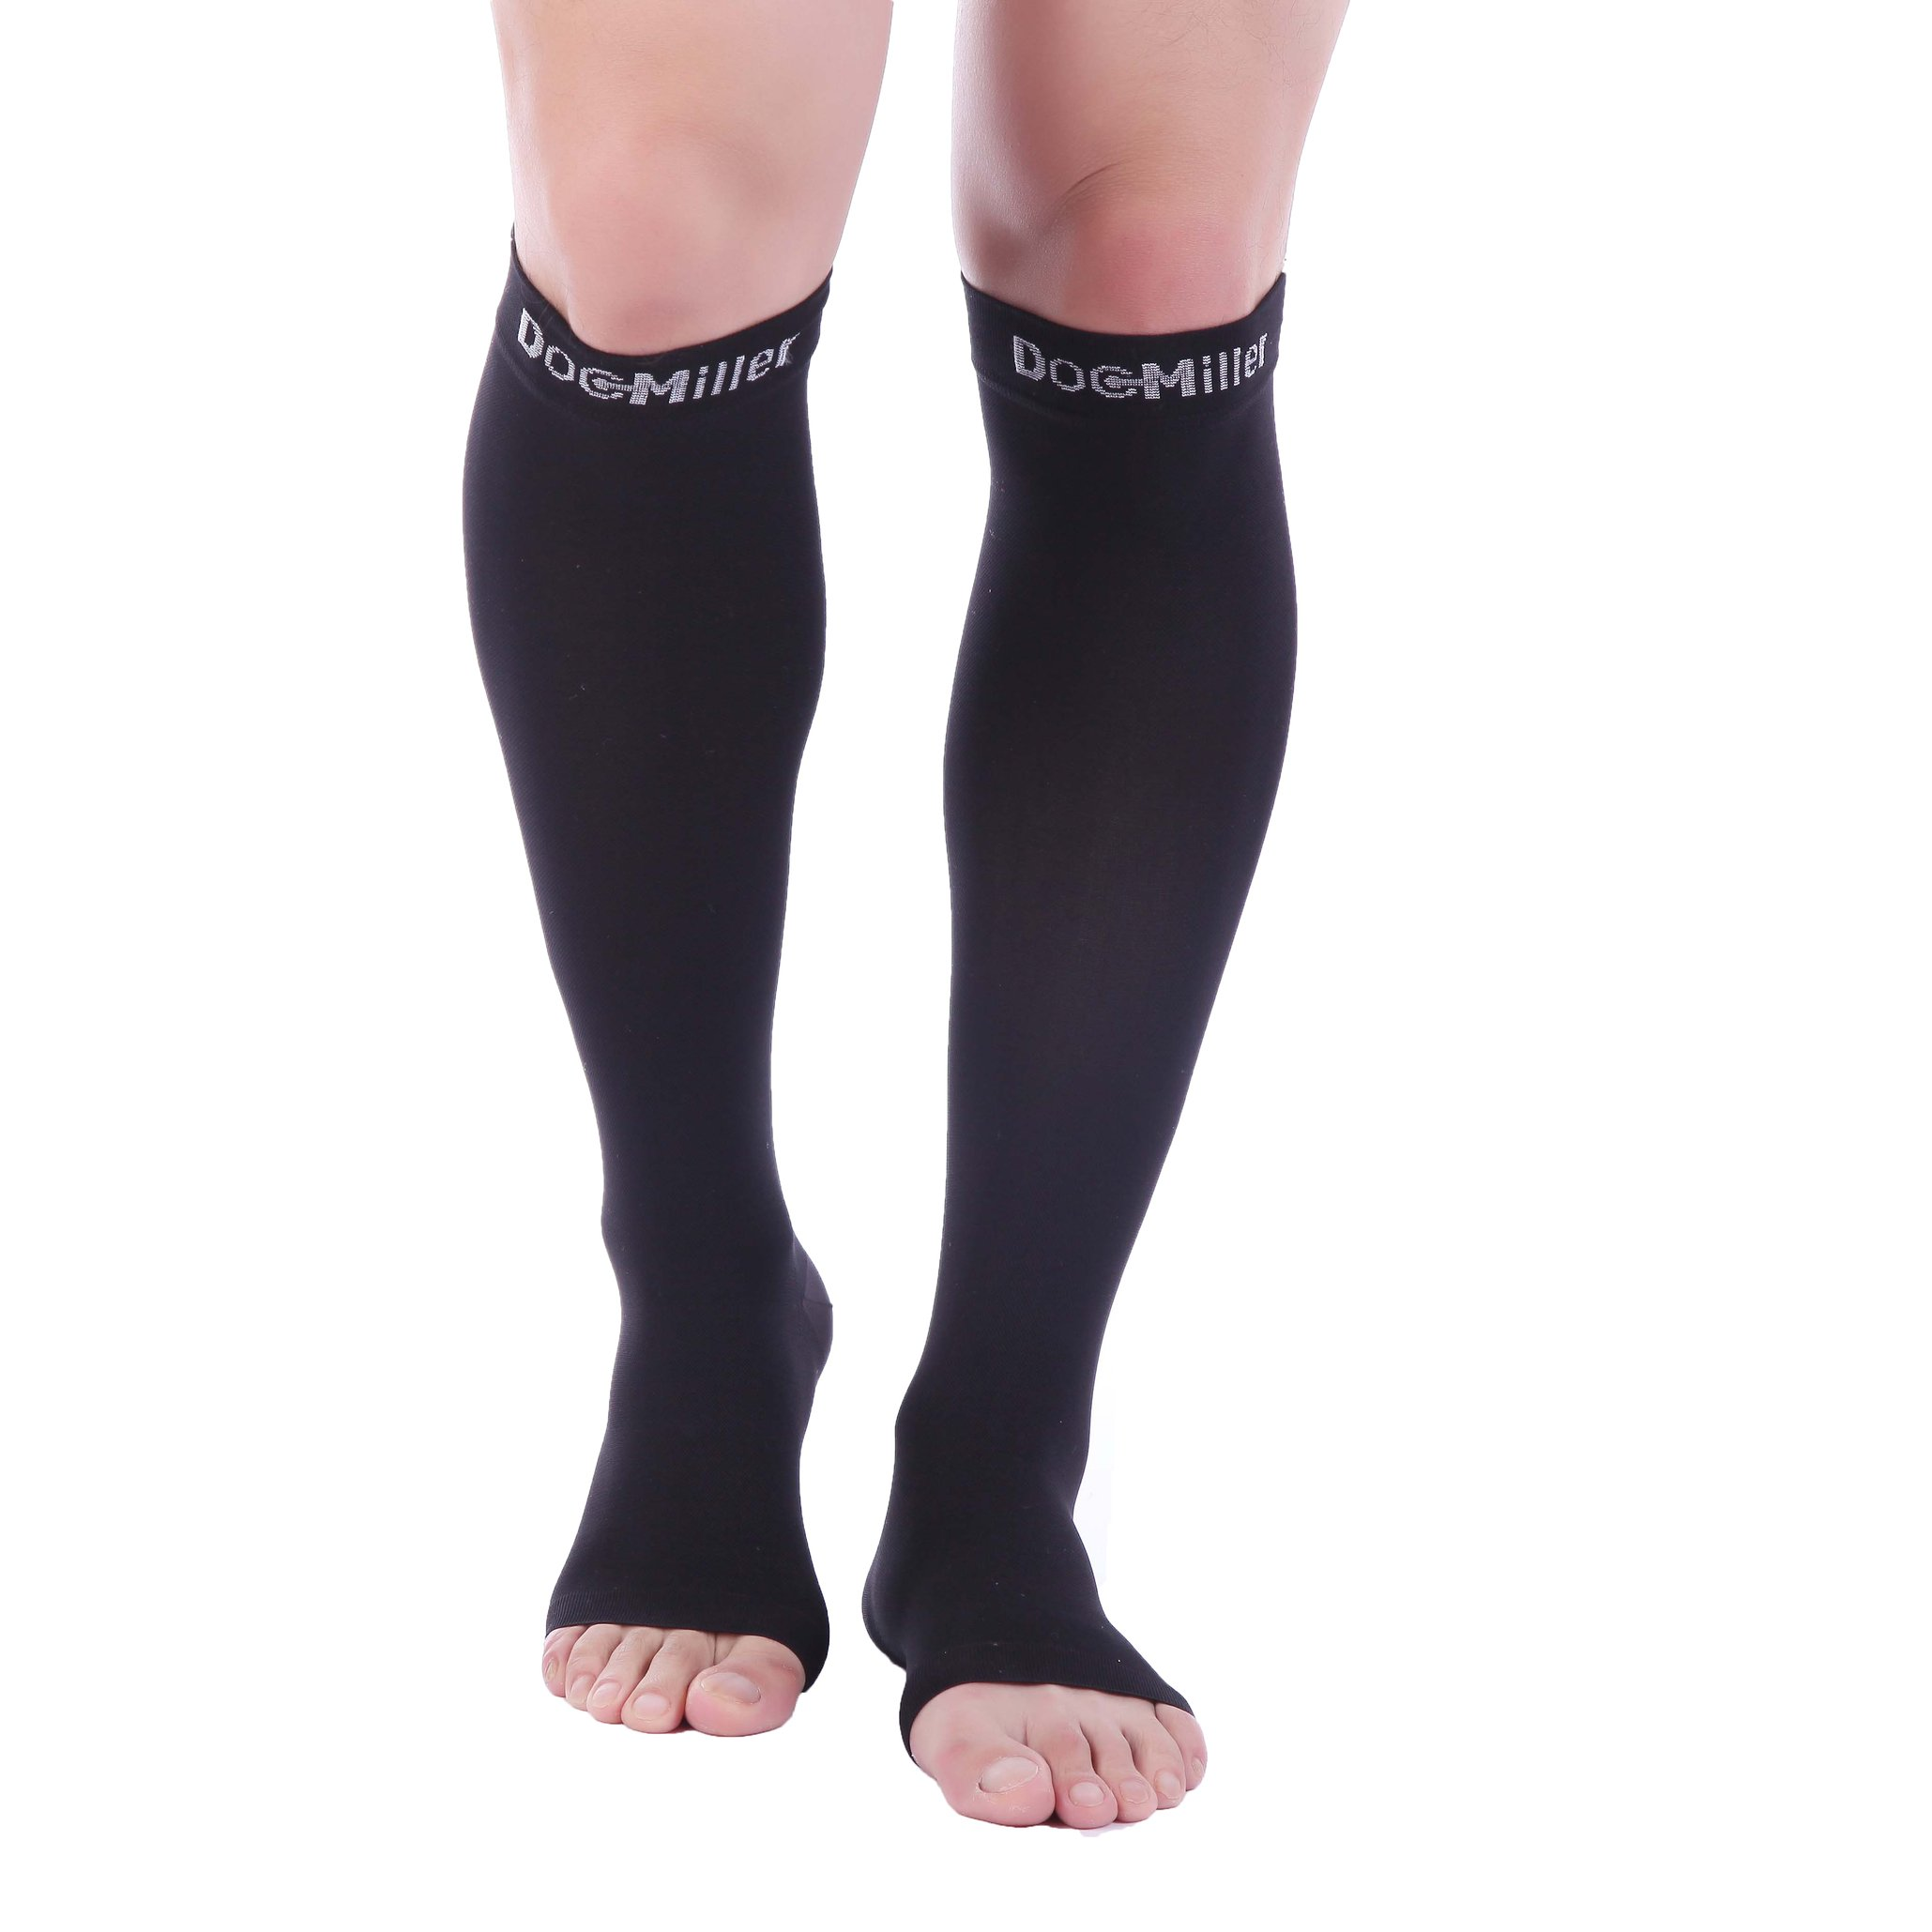 Doc Miller Premium Open Toe Compression Socks 1 Pair 30-40mmHg Medical Grade Support Graduated Pressure Recovery Circulation Varicose Spider Veins Airplane Maternity Stockings (Black, X-Large)